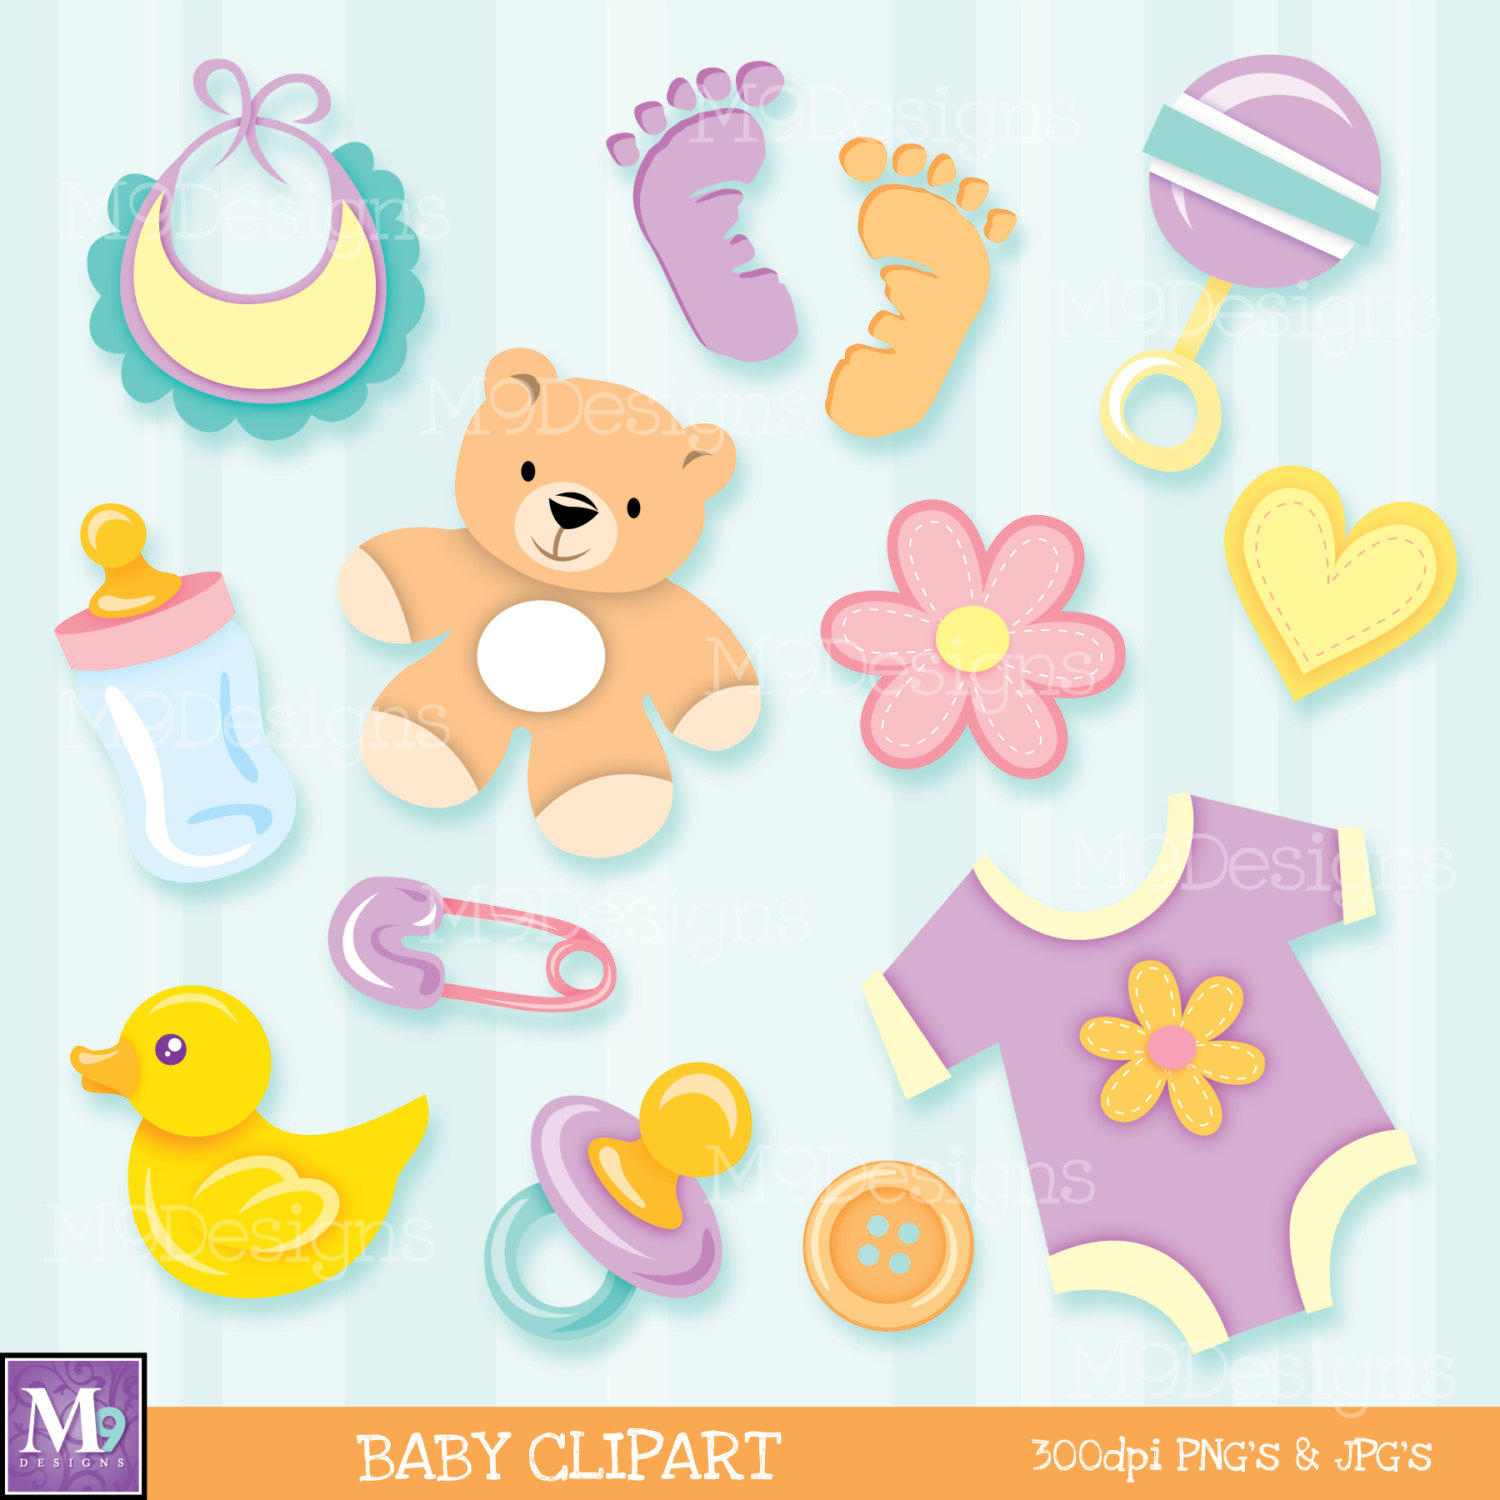 New Baby Clipart Download.